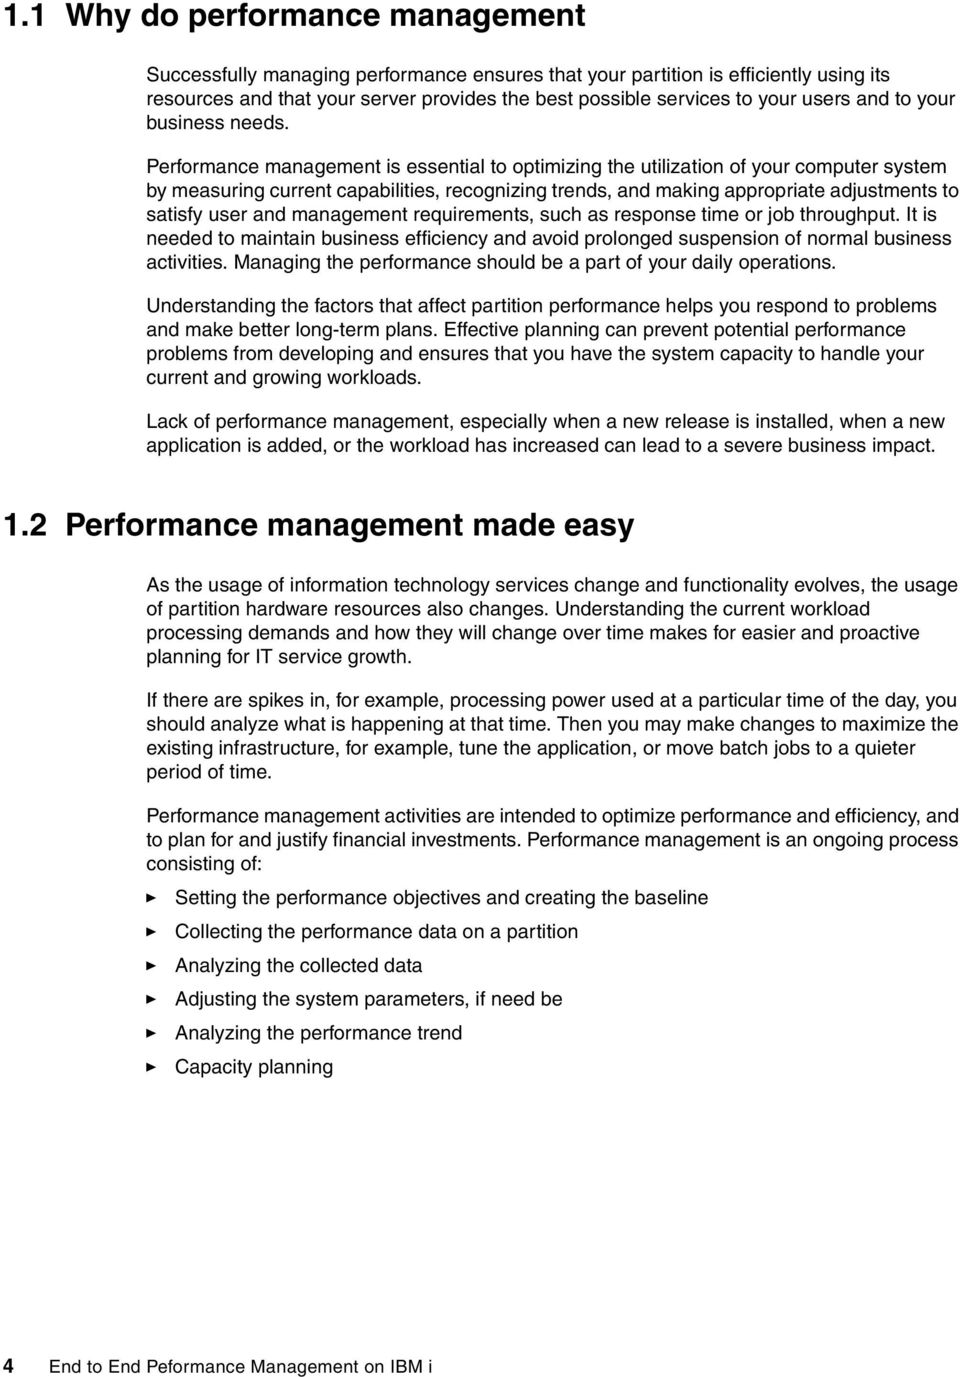 Performance management is essential to optimizing the utilization of your computer system by measuring current capabilities, recognizing trends, and making appropriate adjustments to satisfy user and